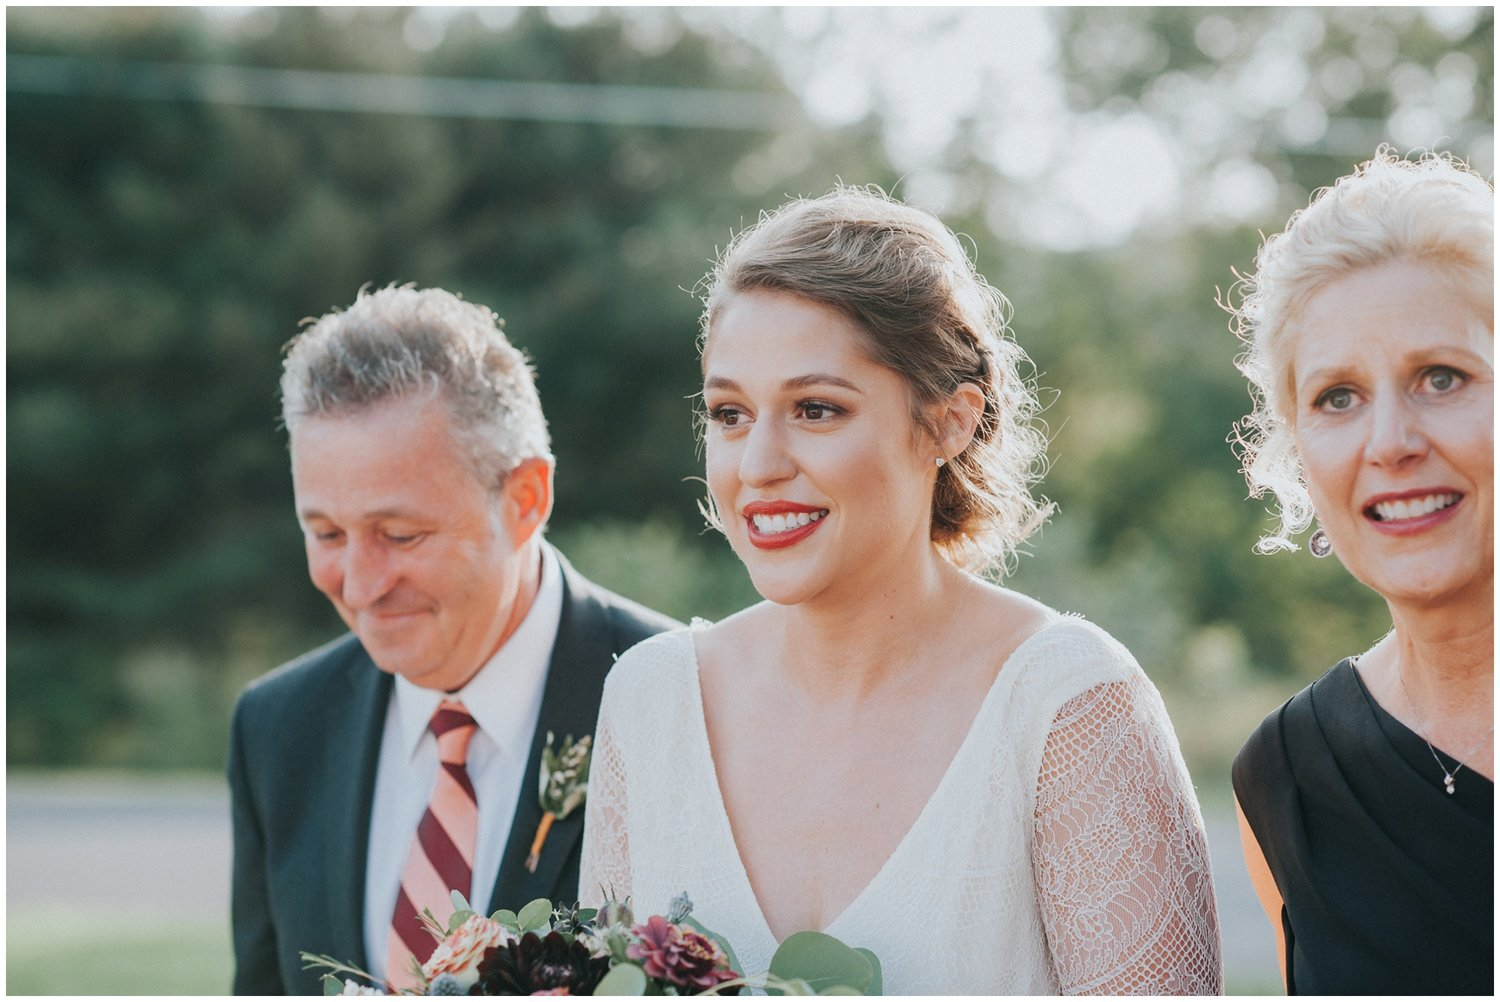 Makeup by Leah Francesca // Hair by Ash Pardee of Fire & Ash // Photography by  Jessie Casey Photography // Wedding Event Designer by Mary Elise Reese Event Design // Dress from True North Bridal  // Flowers by Poppytree Floral